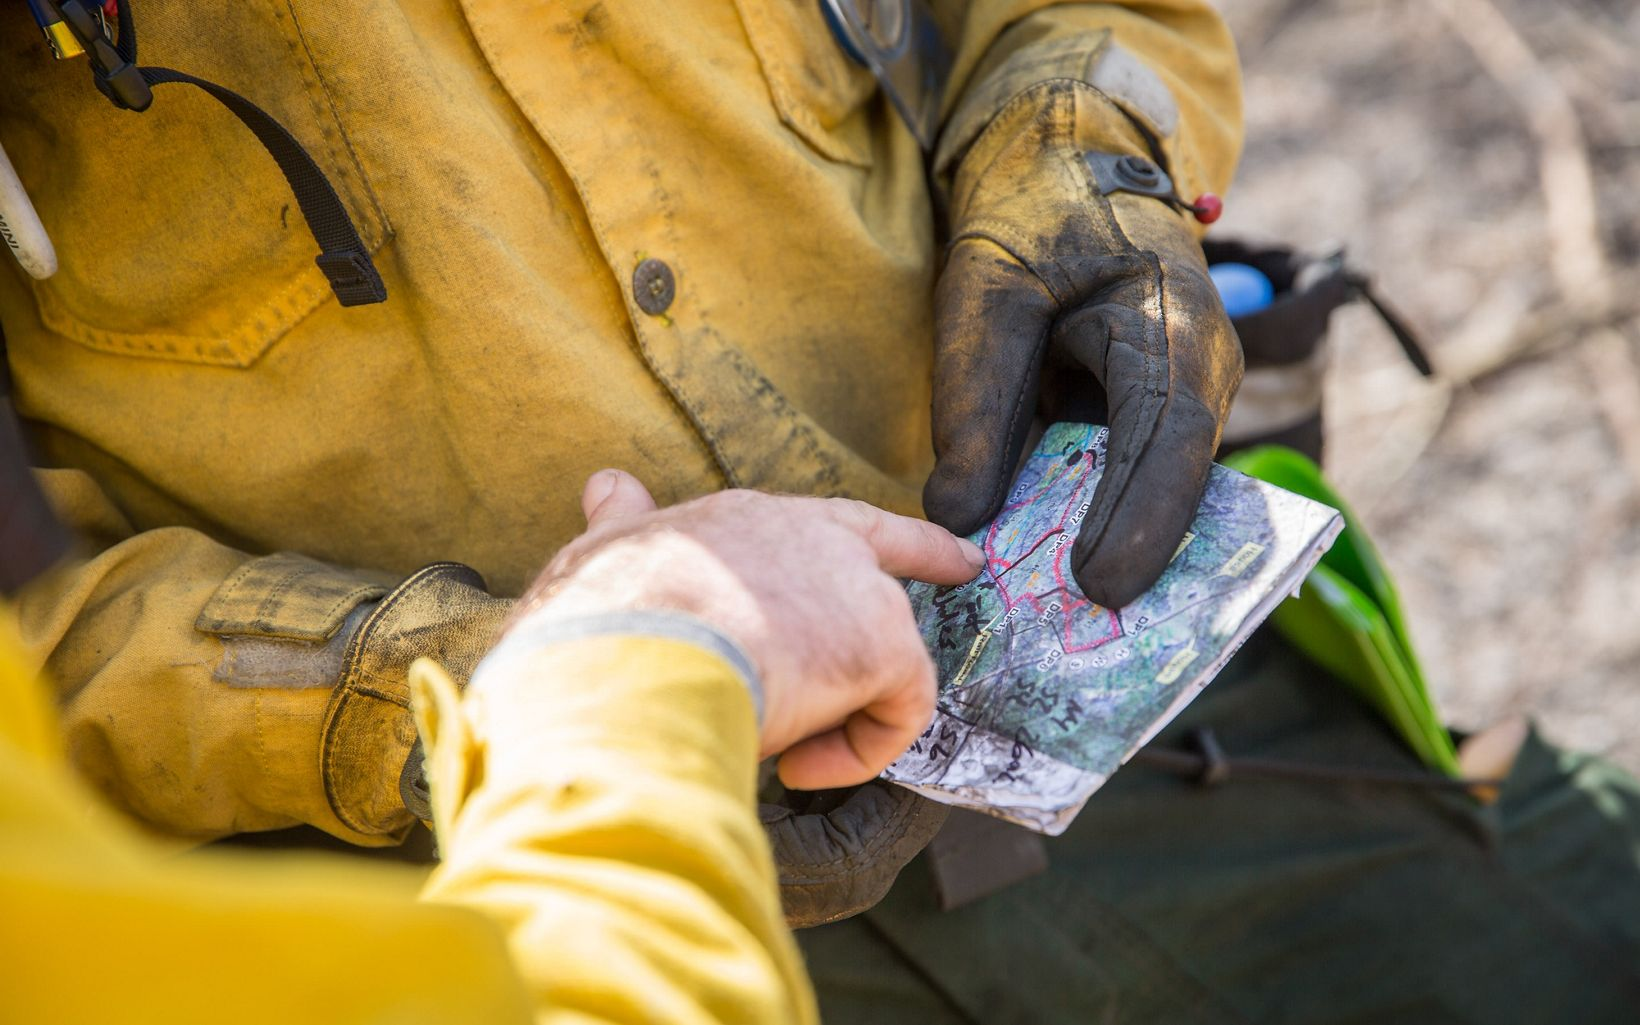 The hands of fire crew members hold a map.